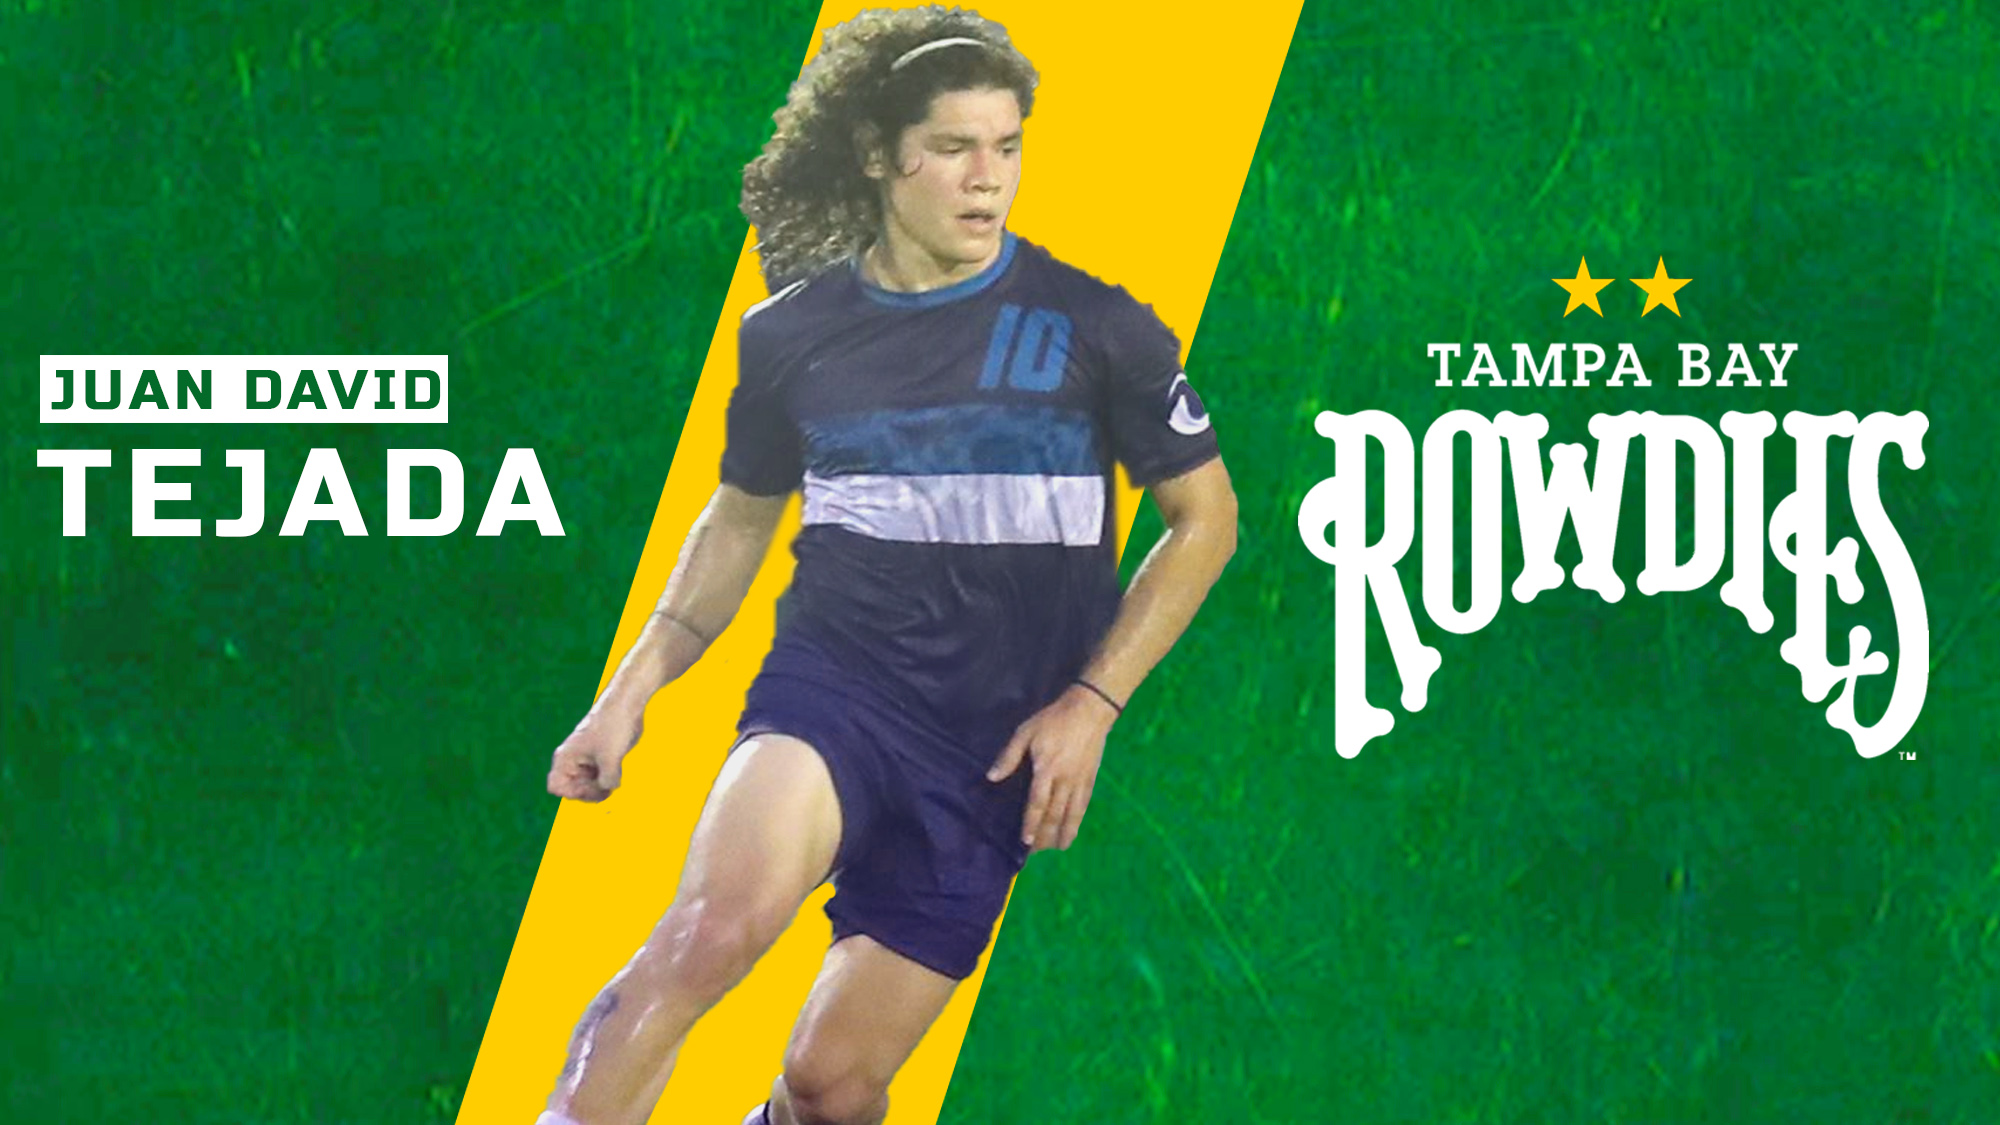 tejada signs with tampa bay rowdies eckerd college athletics tejada signs with tampa bay rowdies